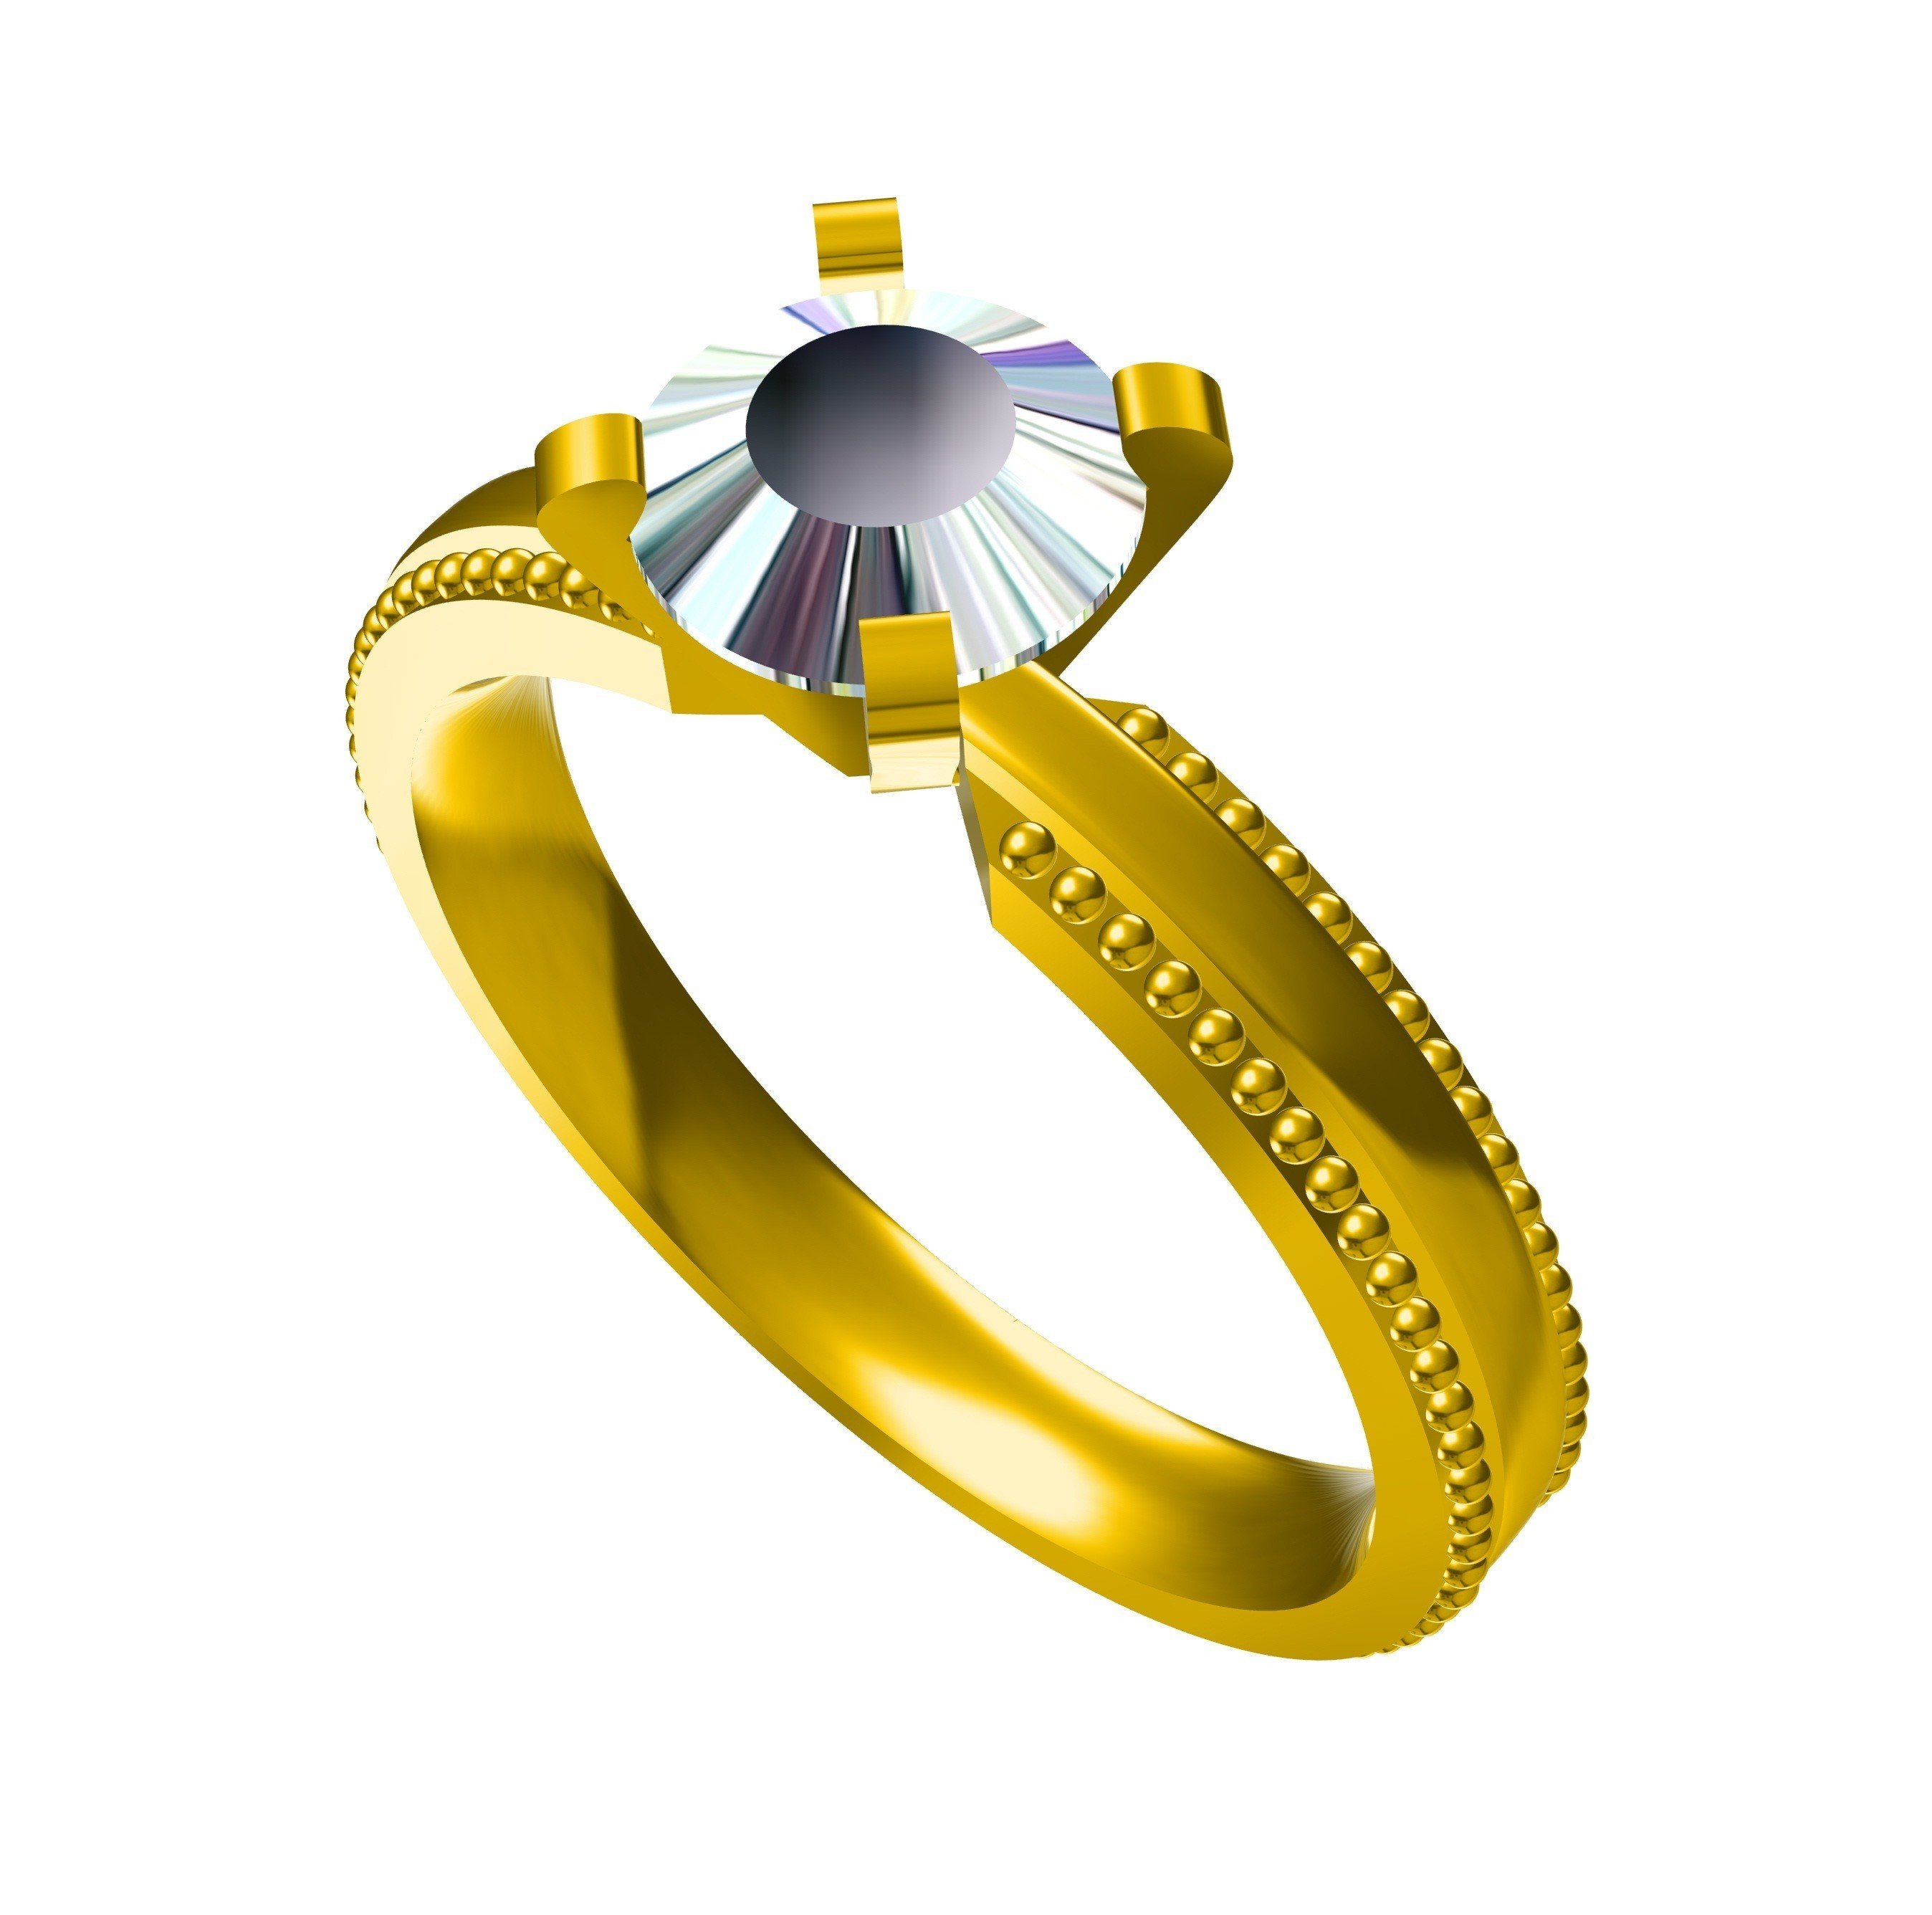 ring.jpg Download free STL file FREE Download Jewelry 3D CAD Model For Wedding Ring • 3D print design, VR3D